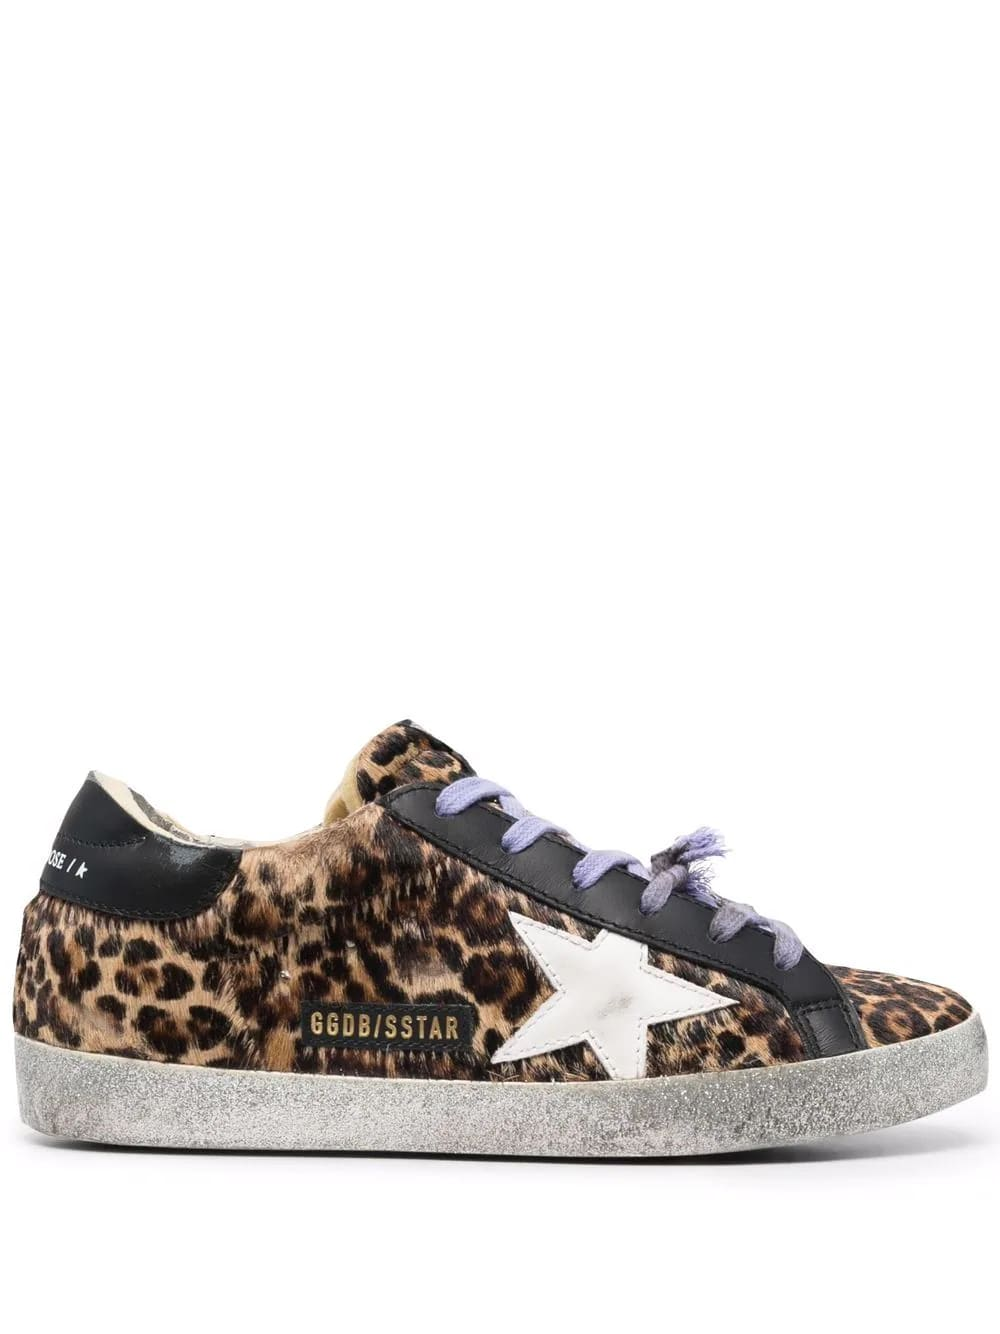 Golden Goose Woman Super-star Sneakers In Leopard Calf Hair With Lilac Laces